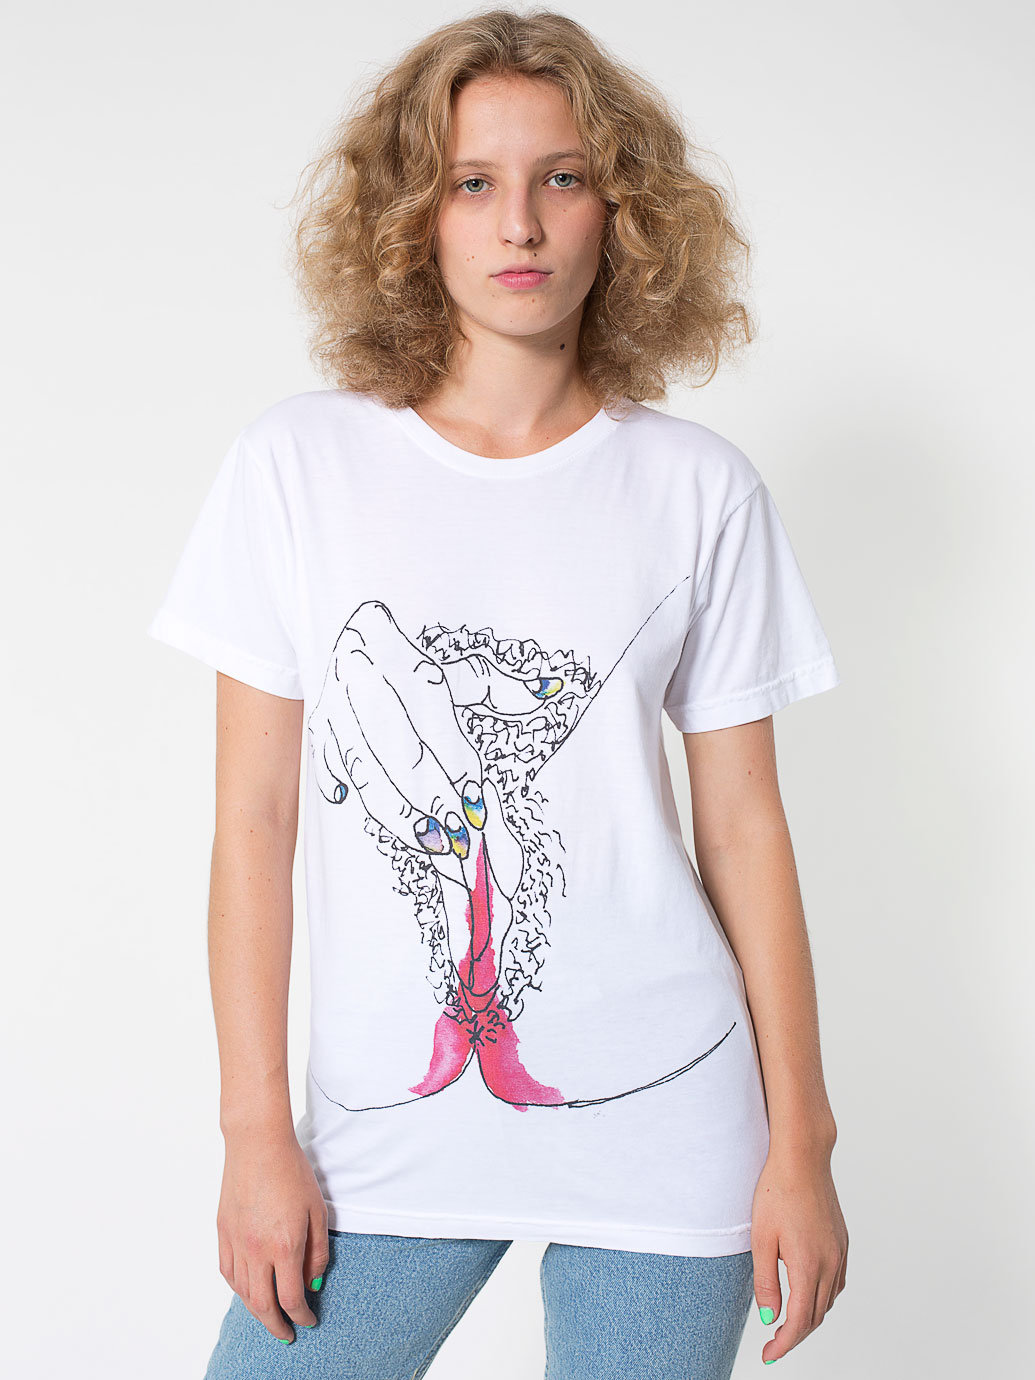 Le t-shirt menstruel period power